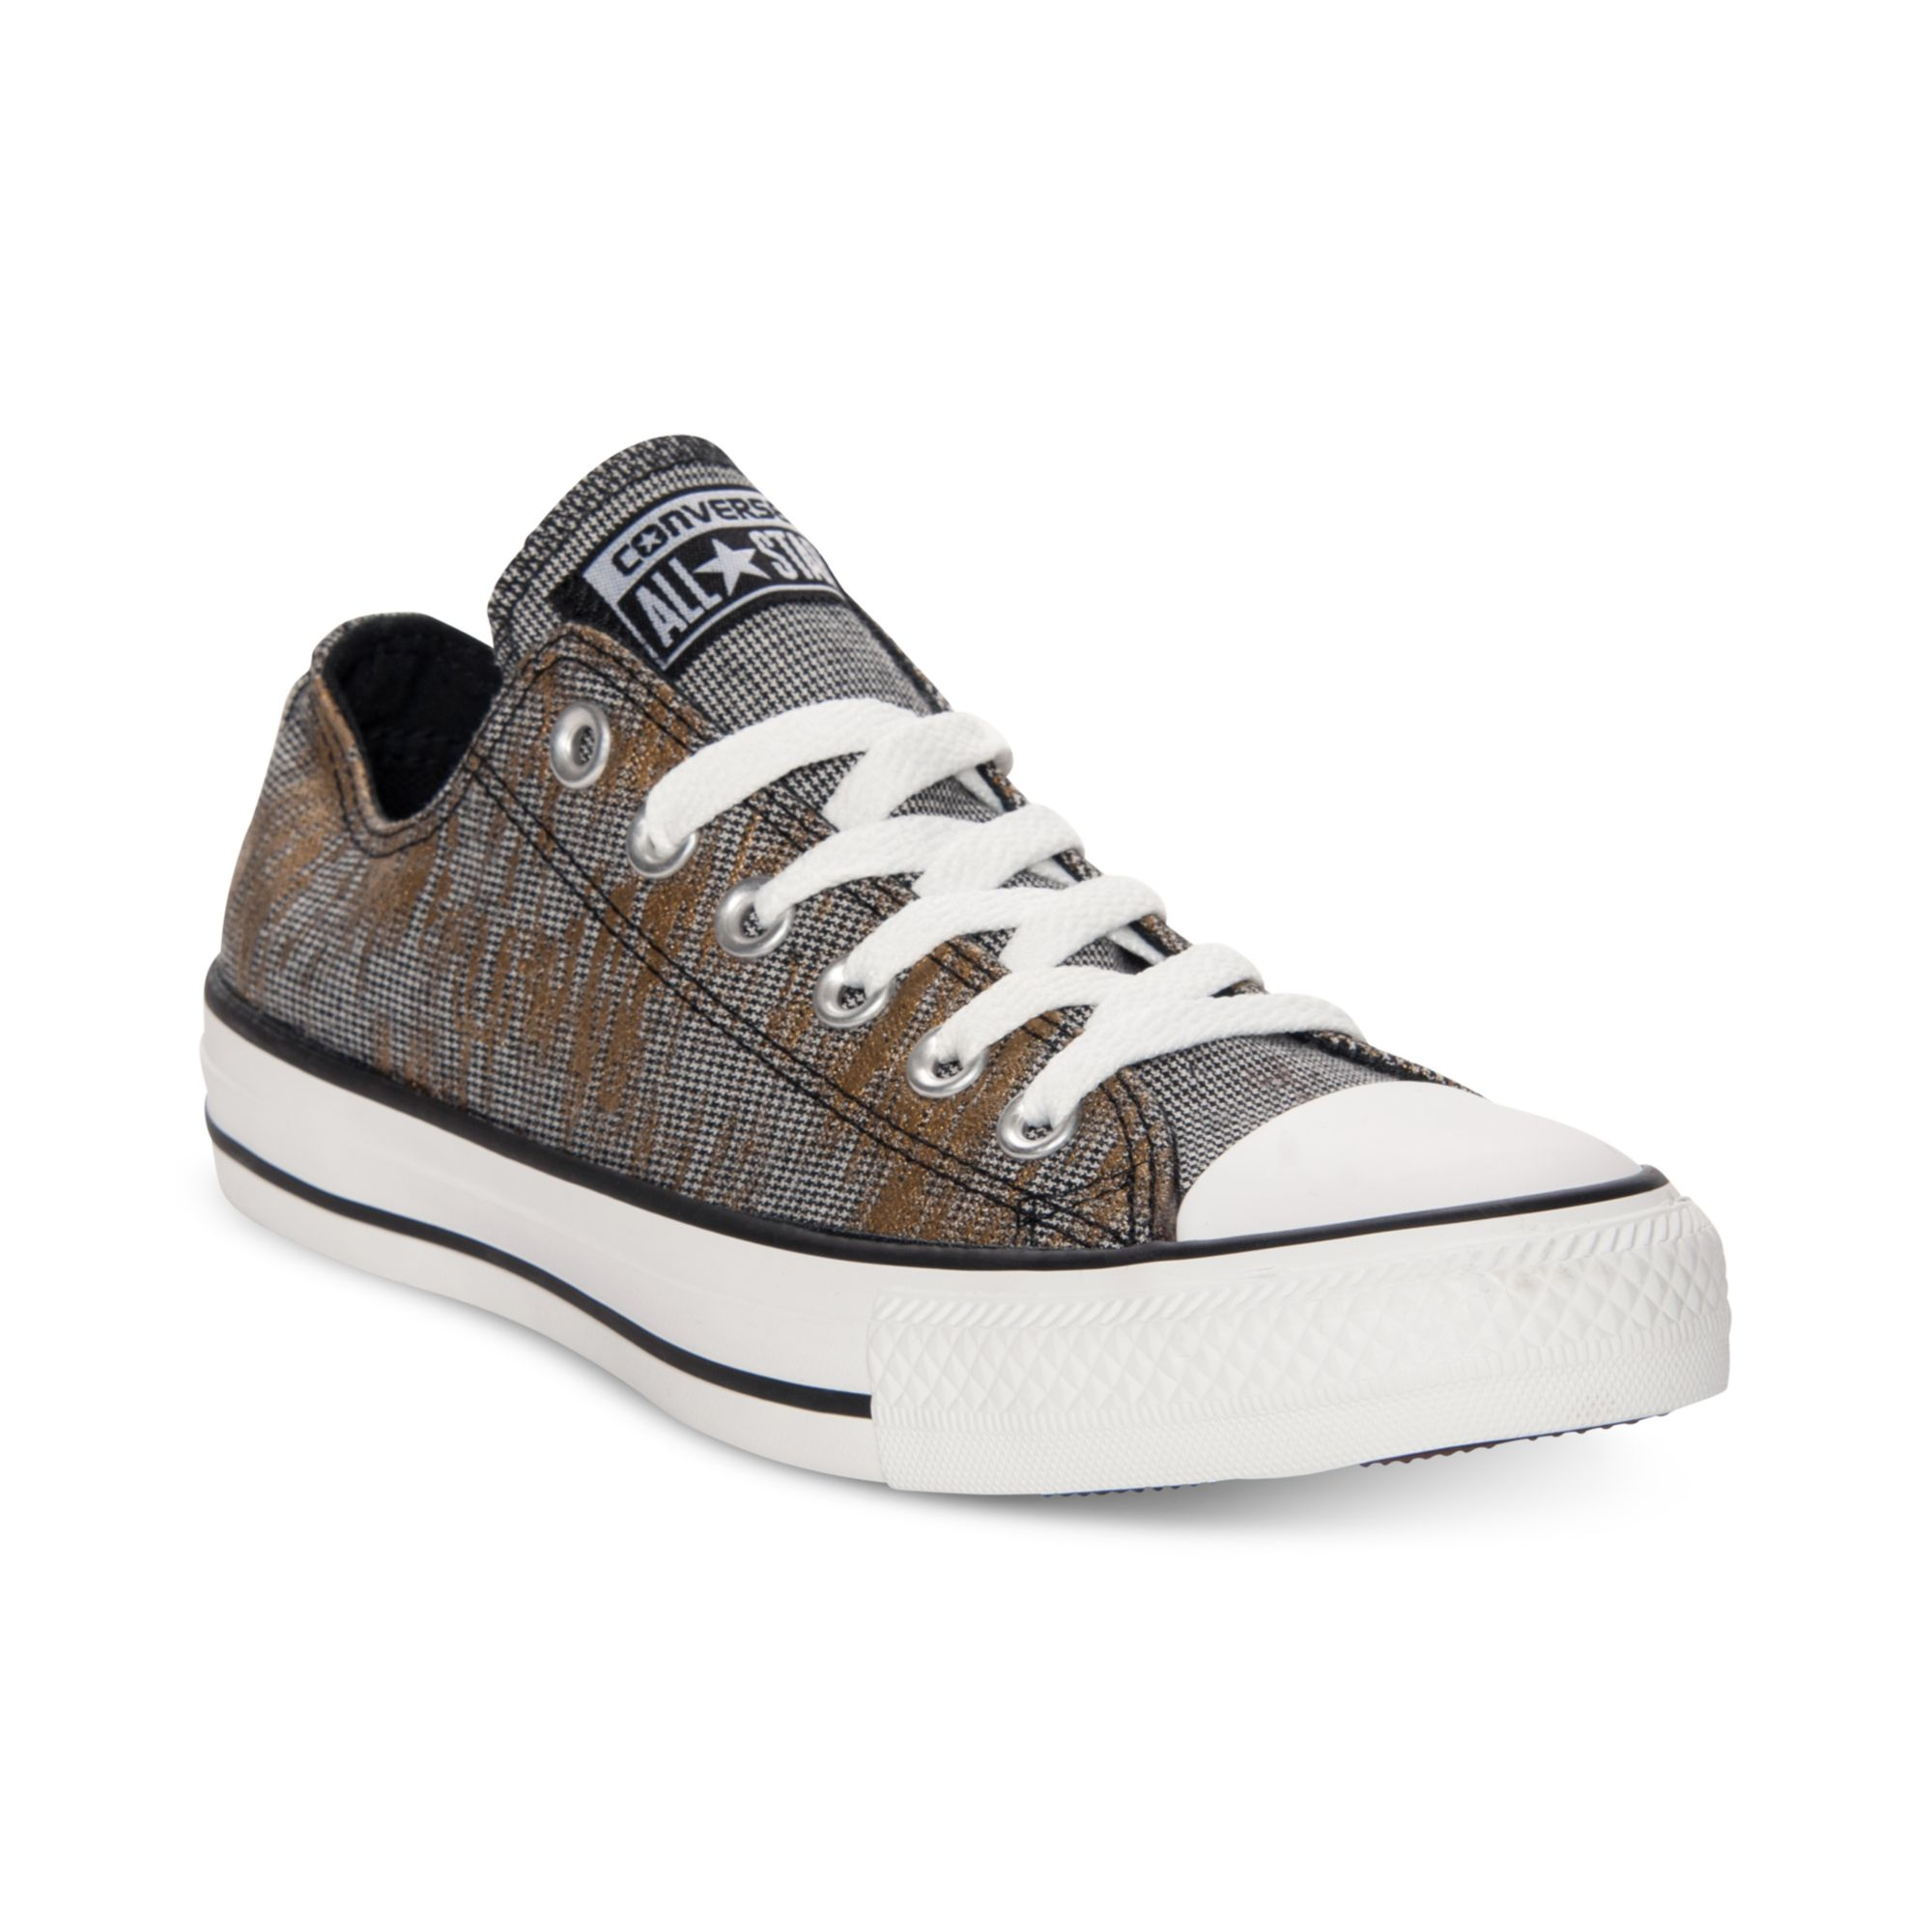 Converse chuck taylor ox casual sneakers in gray lyst - Graue converse ...